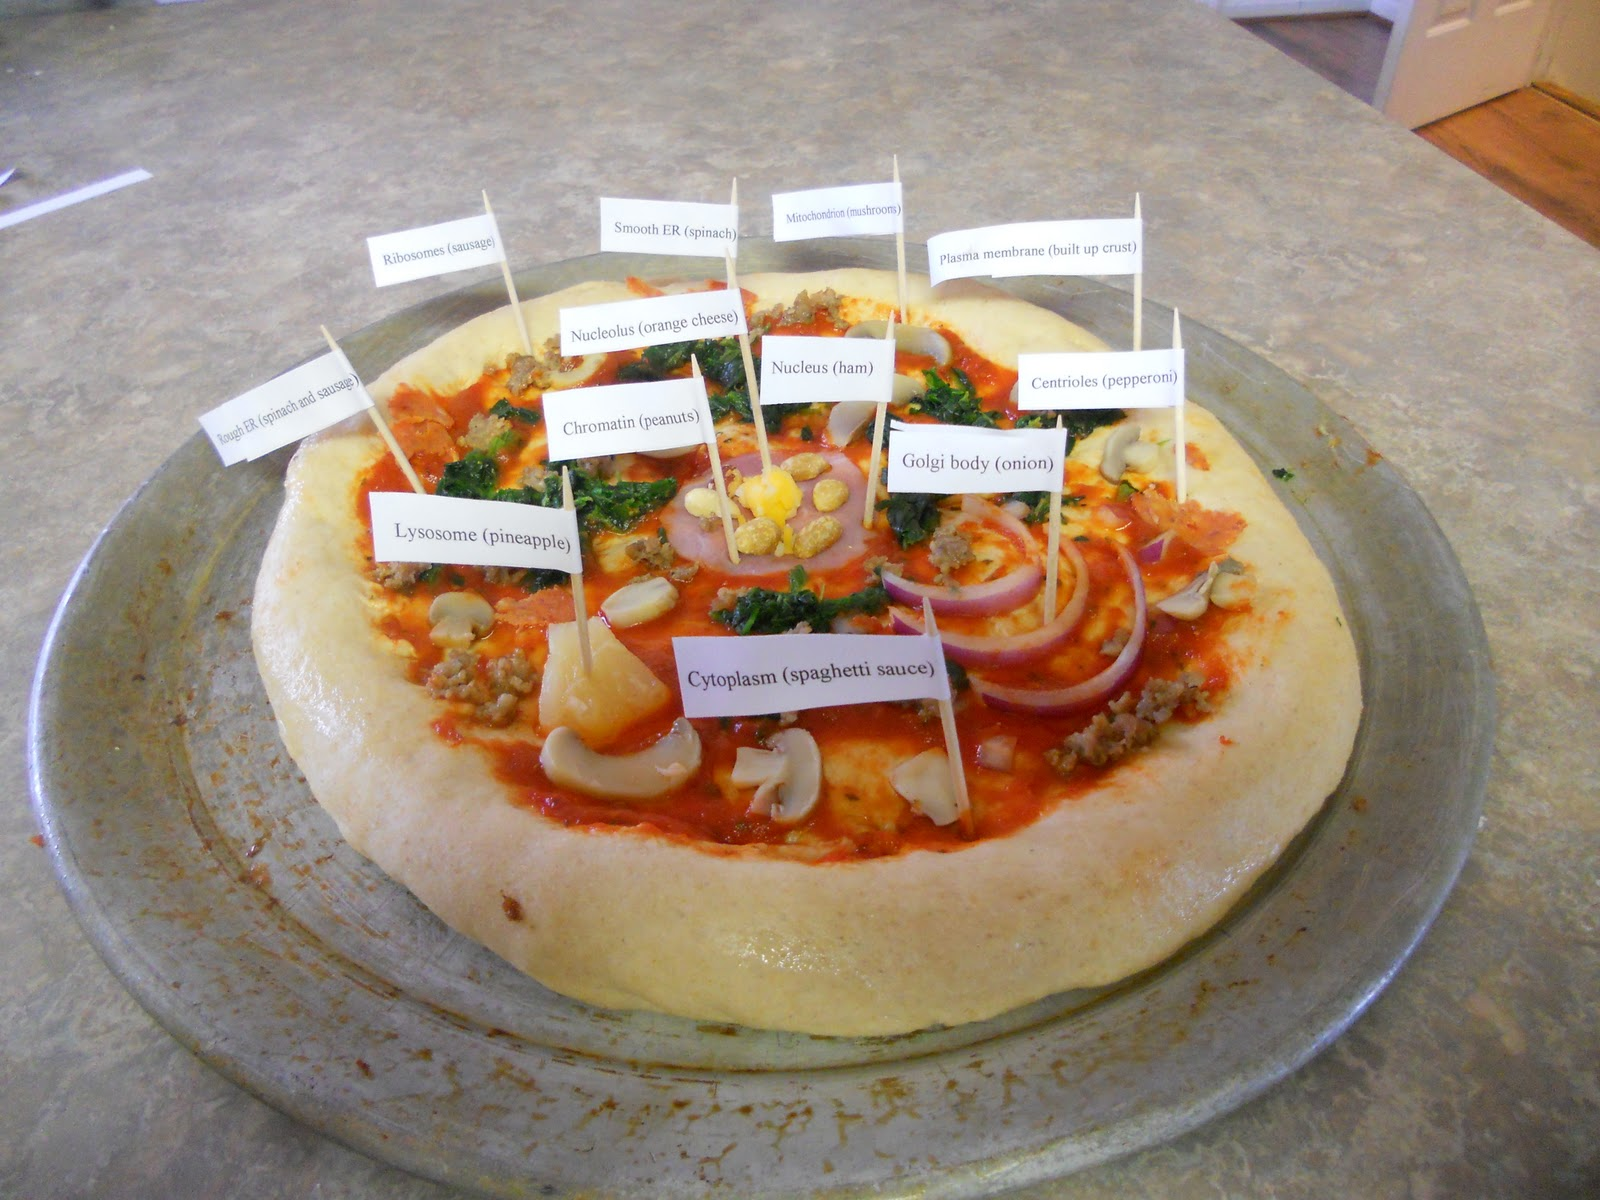 Animal Cell School Project Ideas http://nonniesnotes.blogspot.com/2010/12/pizza-animal-cell-model.html